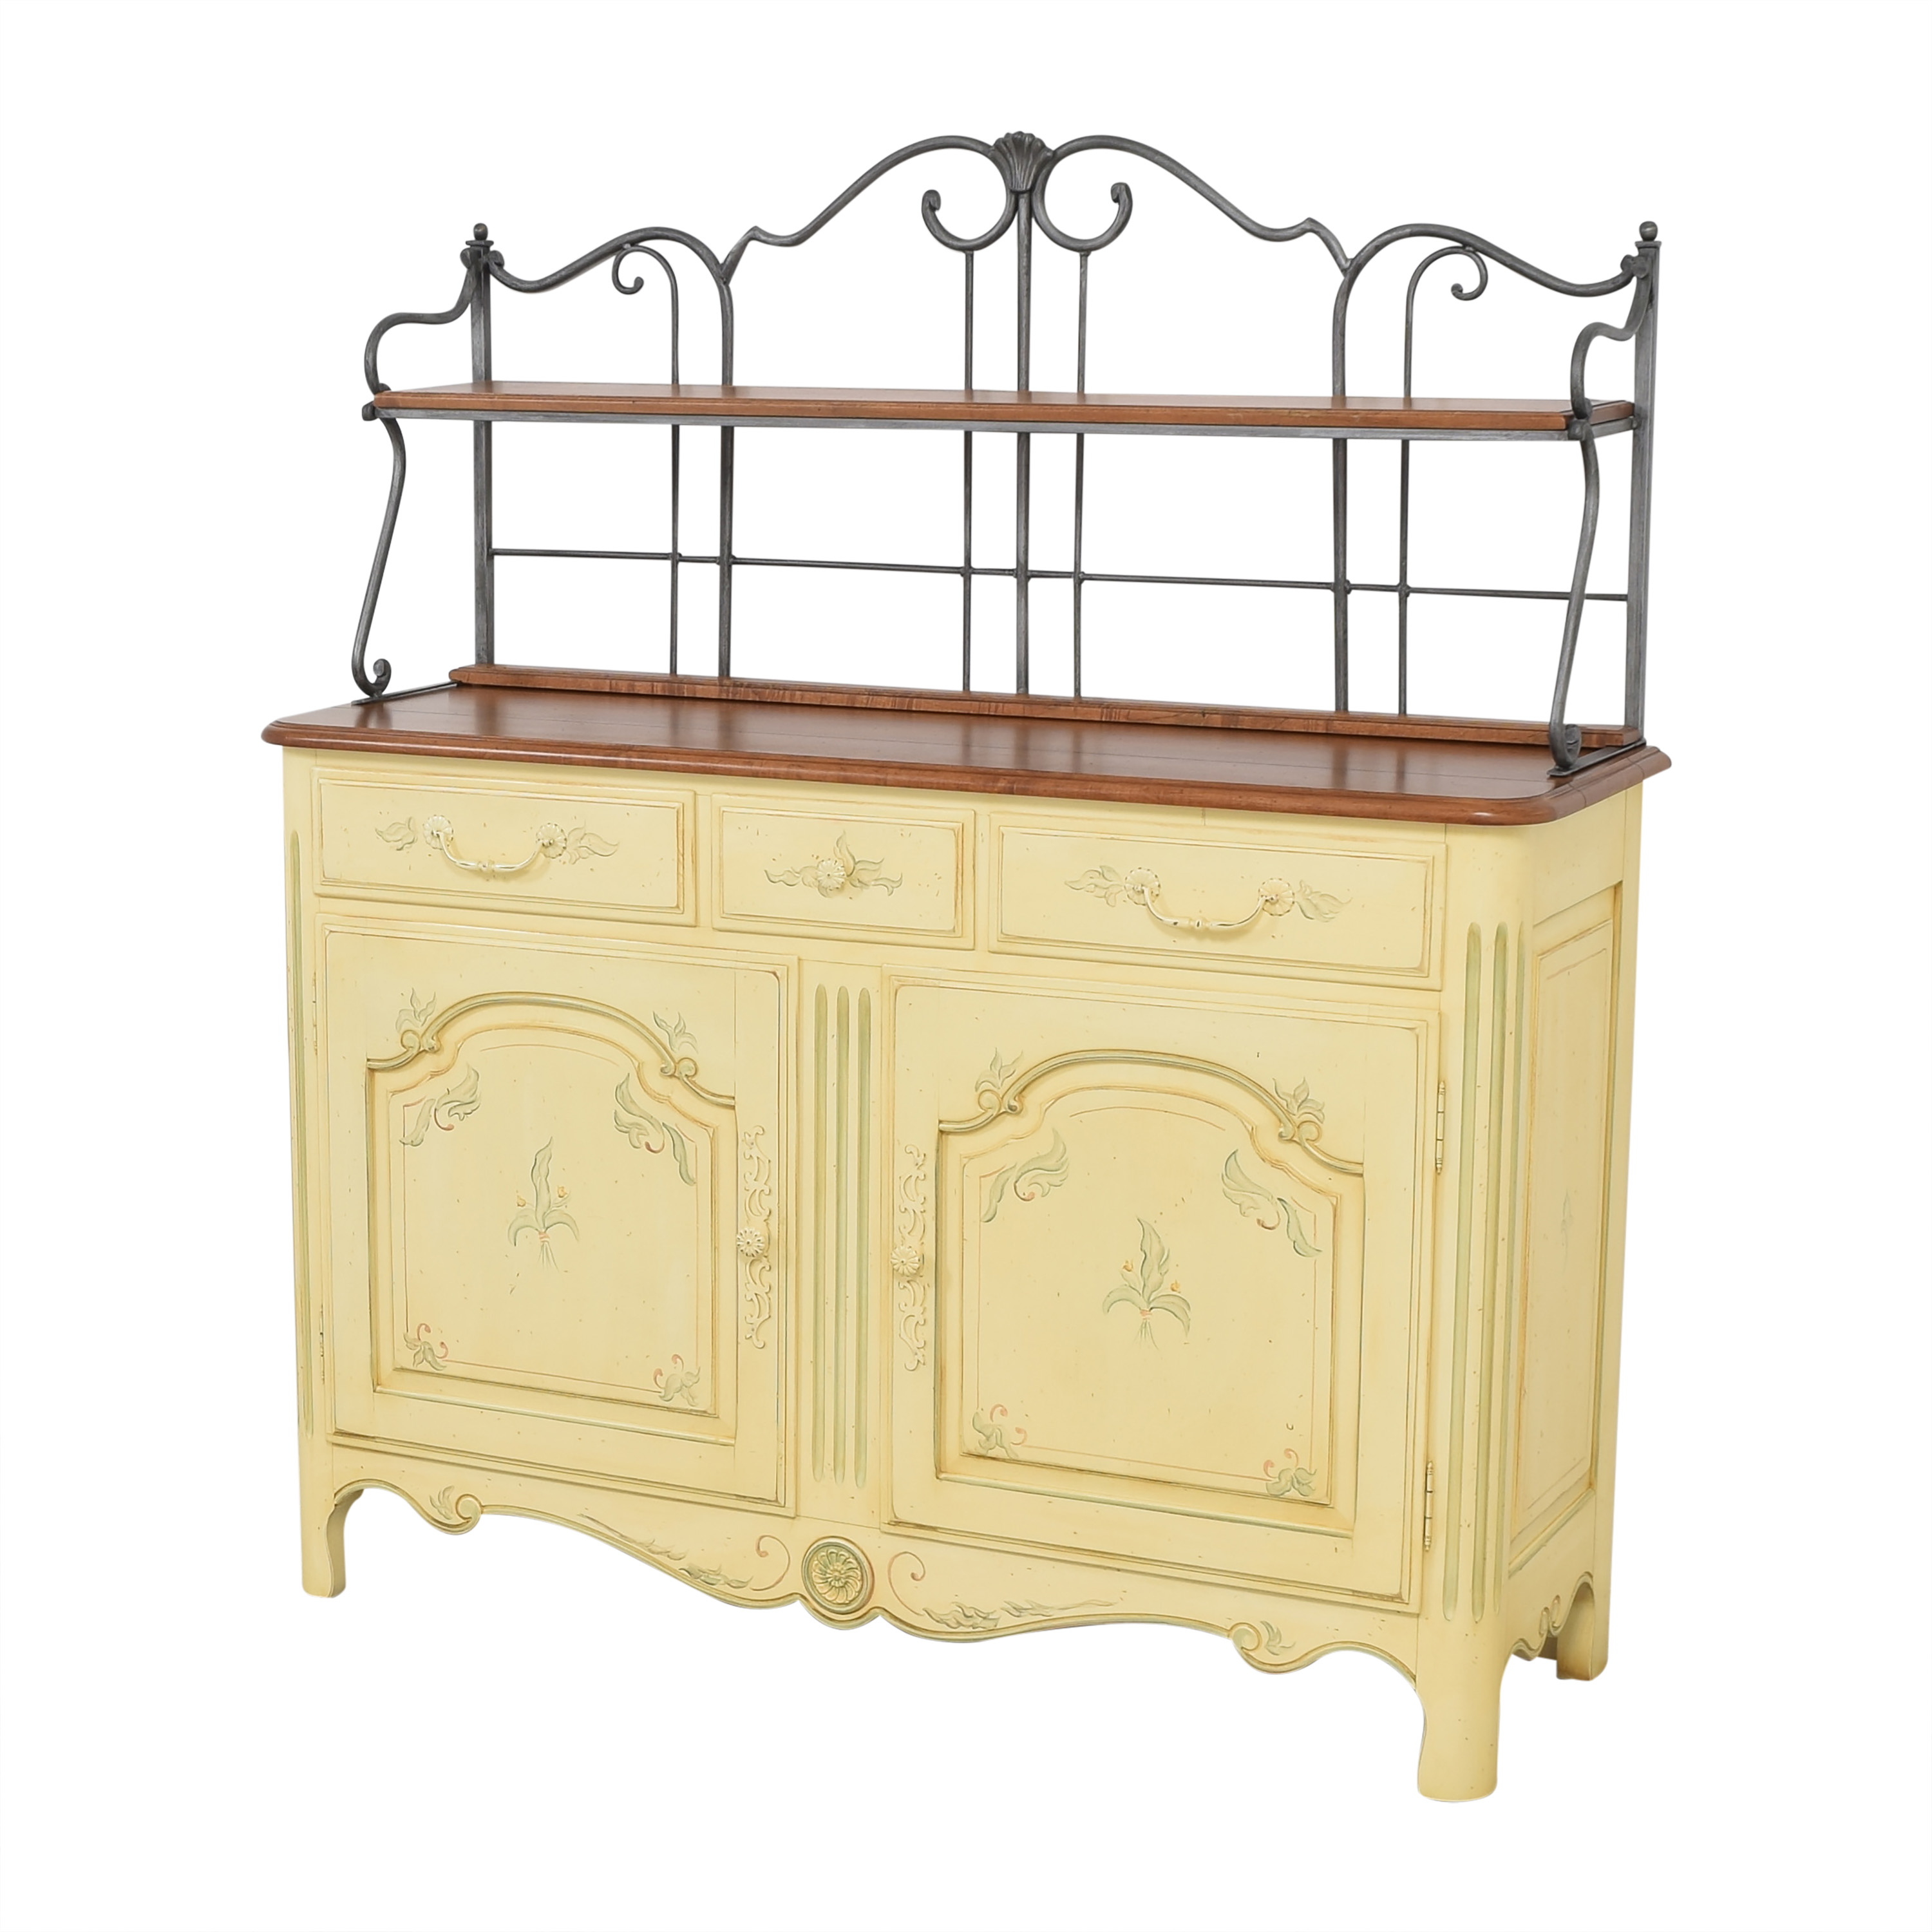 Ethan Allen Ethan Allen Legacy Country French Server Buffet ma